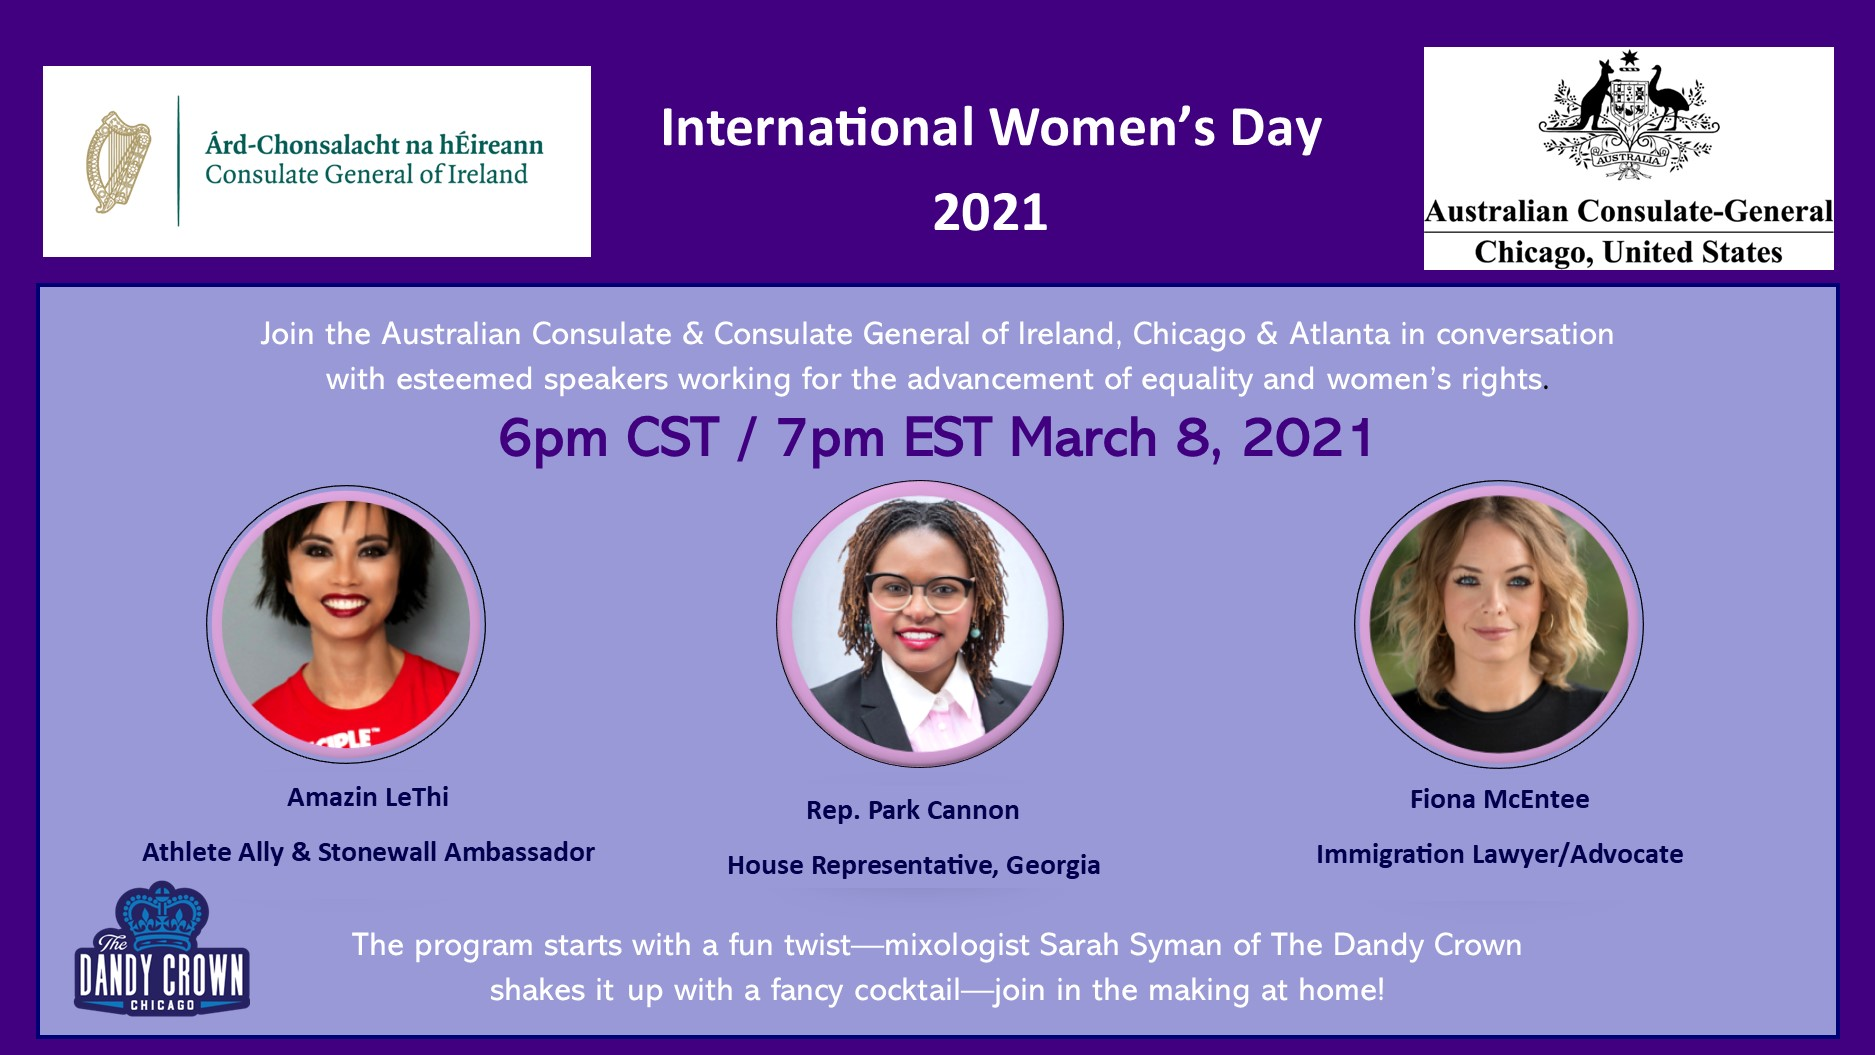 March 8 International Women's Day 2021 Theme #ChooseToChallenge